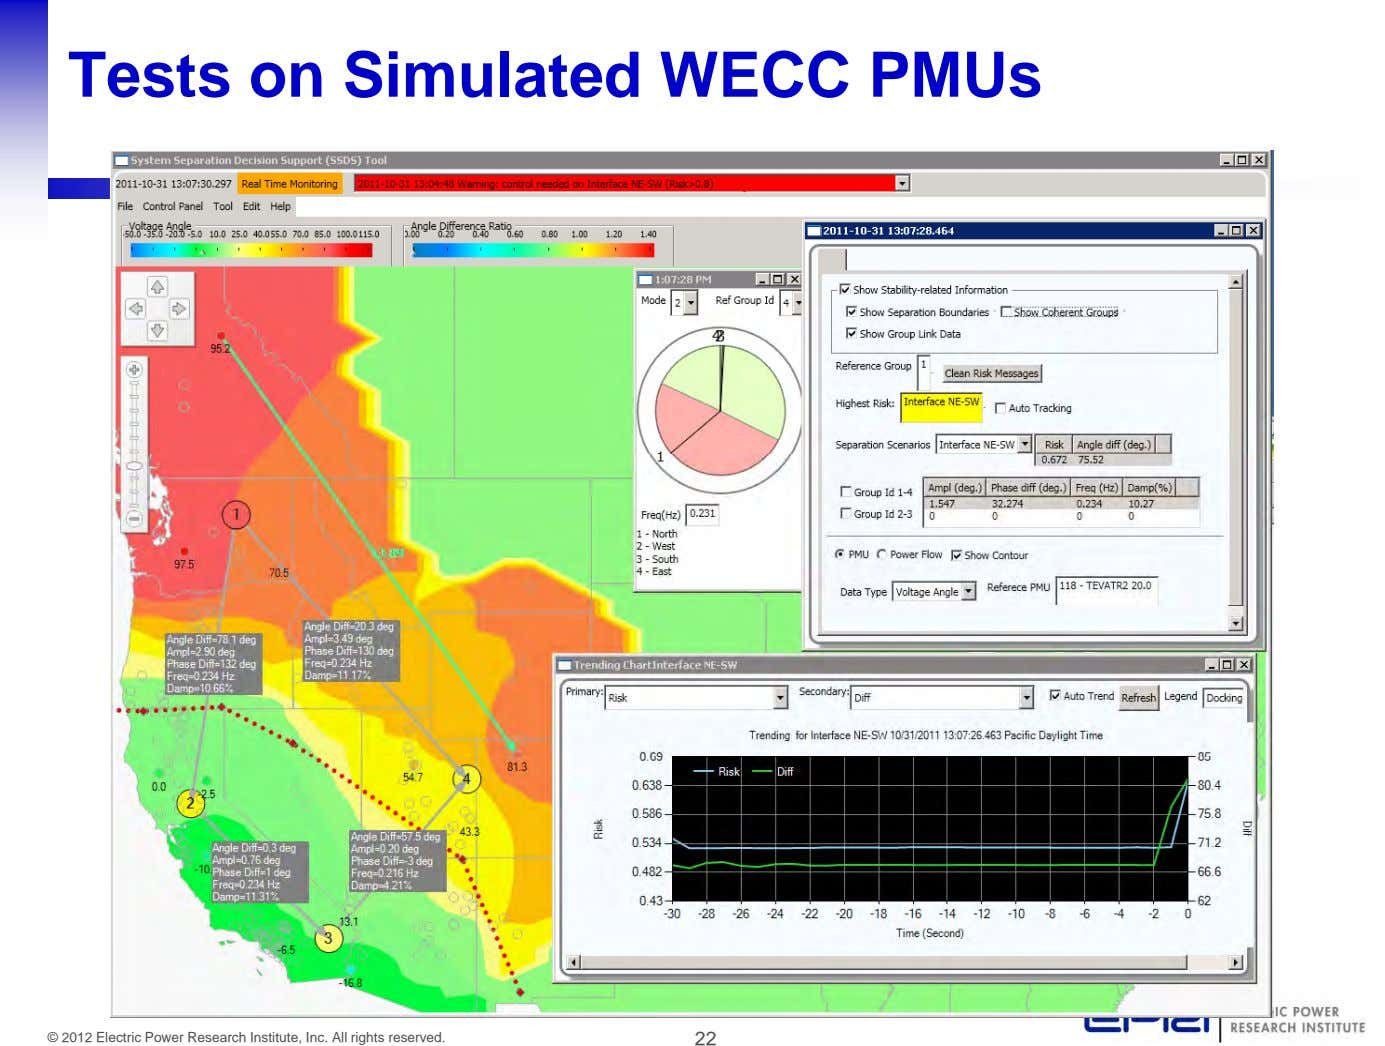 Tests on Simulated WECC PMUs © 2012 Electric Power Research Institute, Inc. All rights reserved.